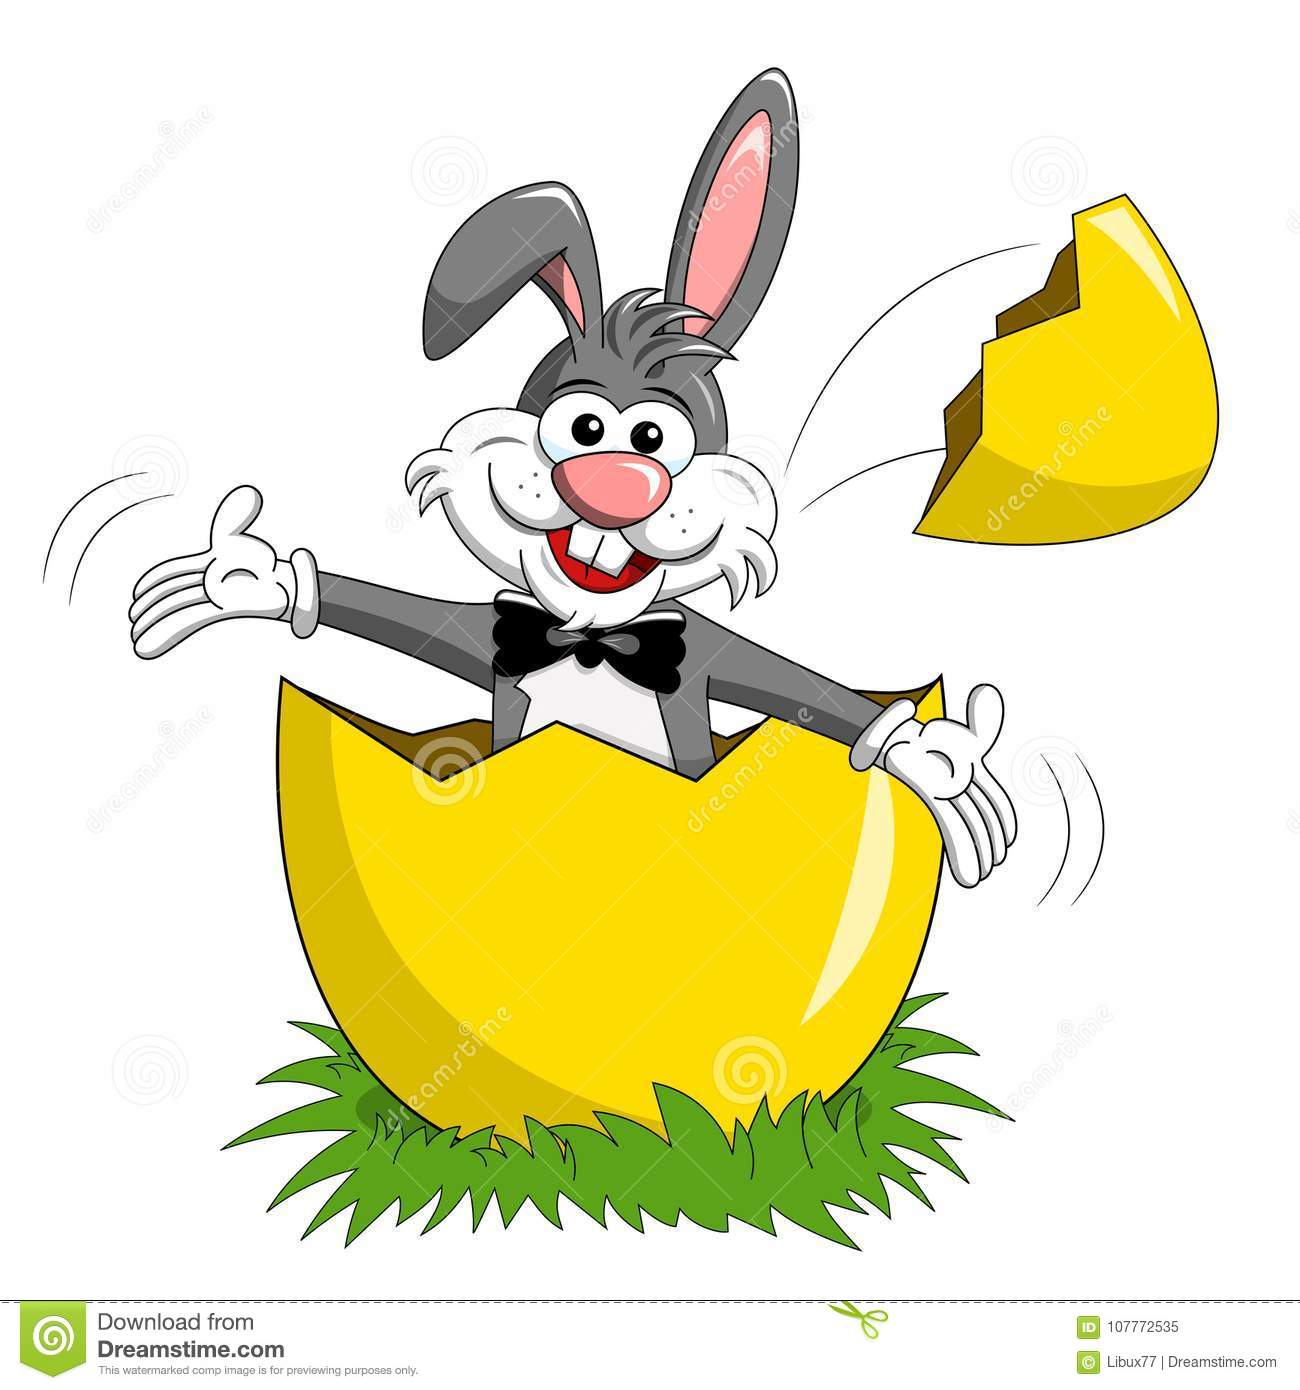 Rabbit or bunny popping up big egg isolated